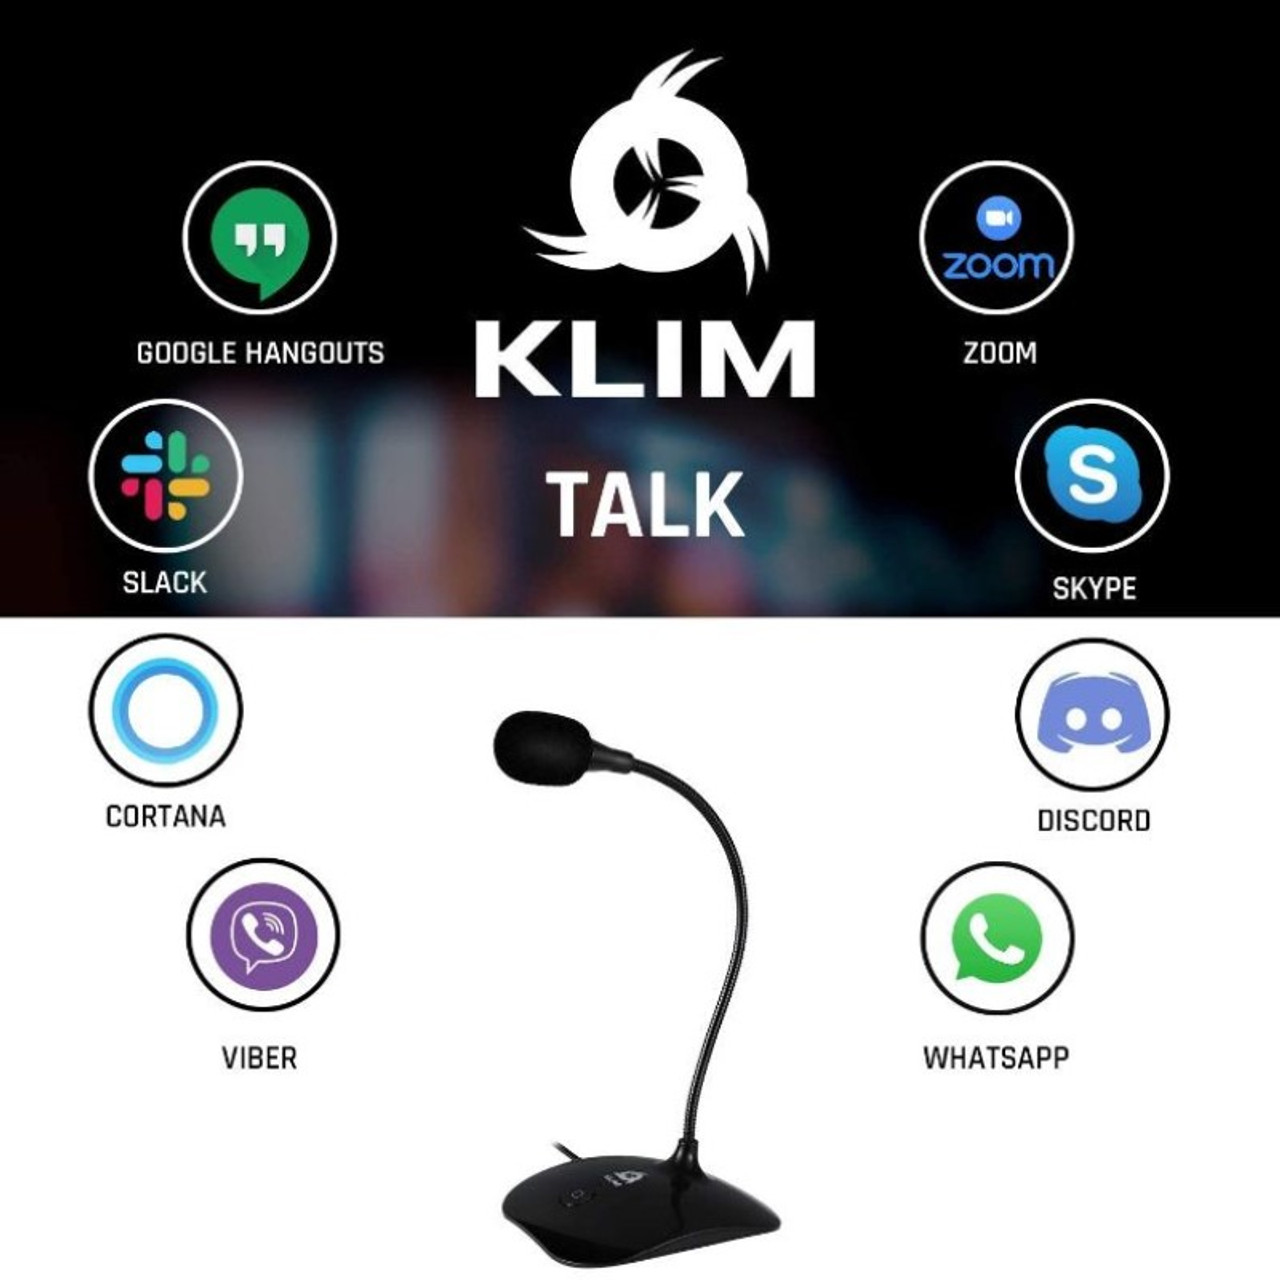 KLIM Talk - USB Desk Microphone - Compatible with Any PC, Laptop, Mac, PS4